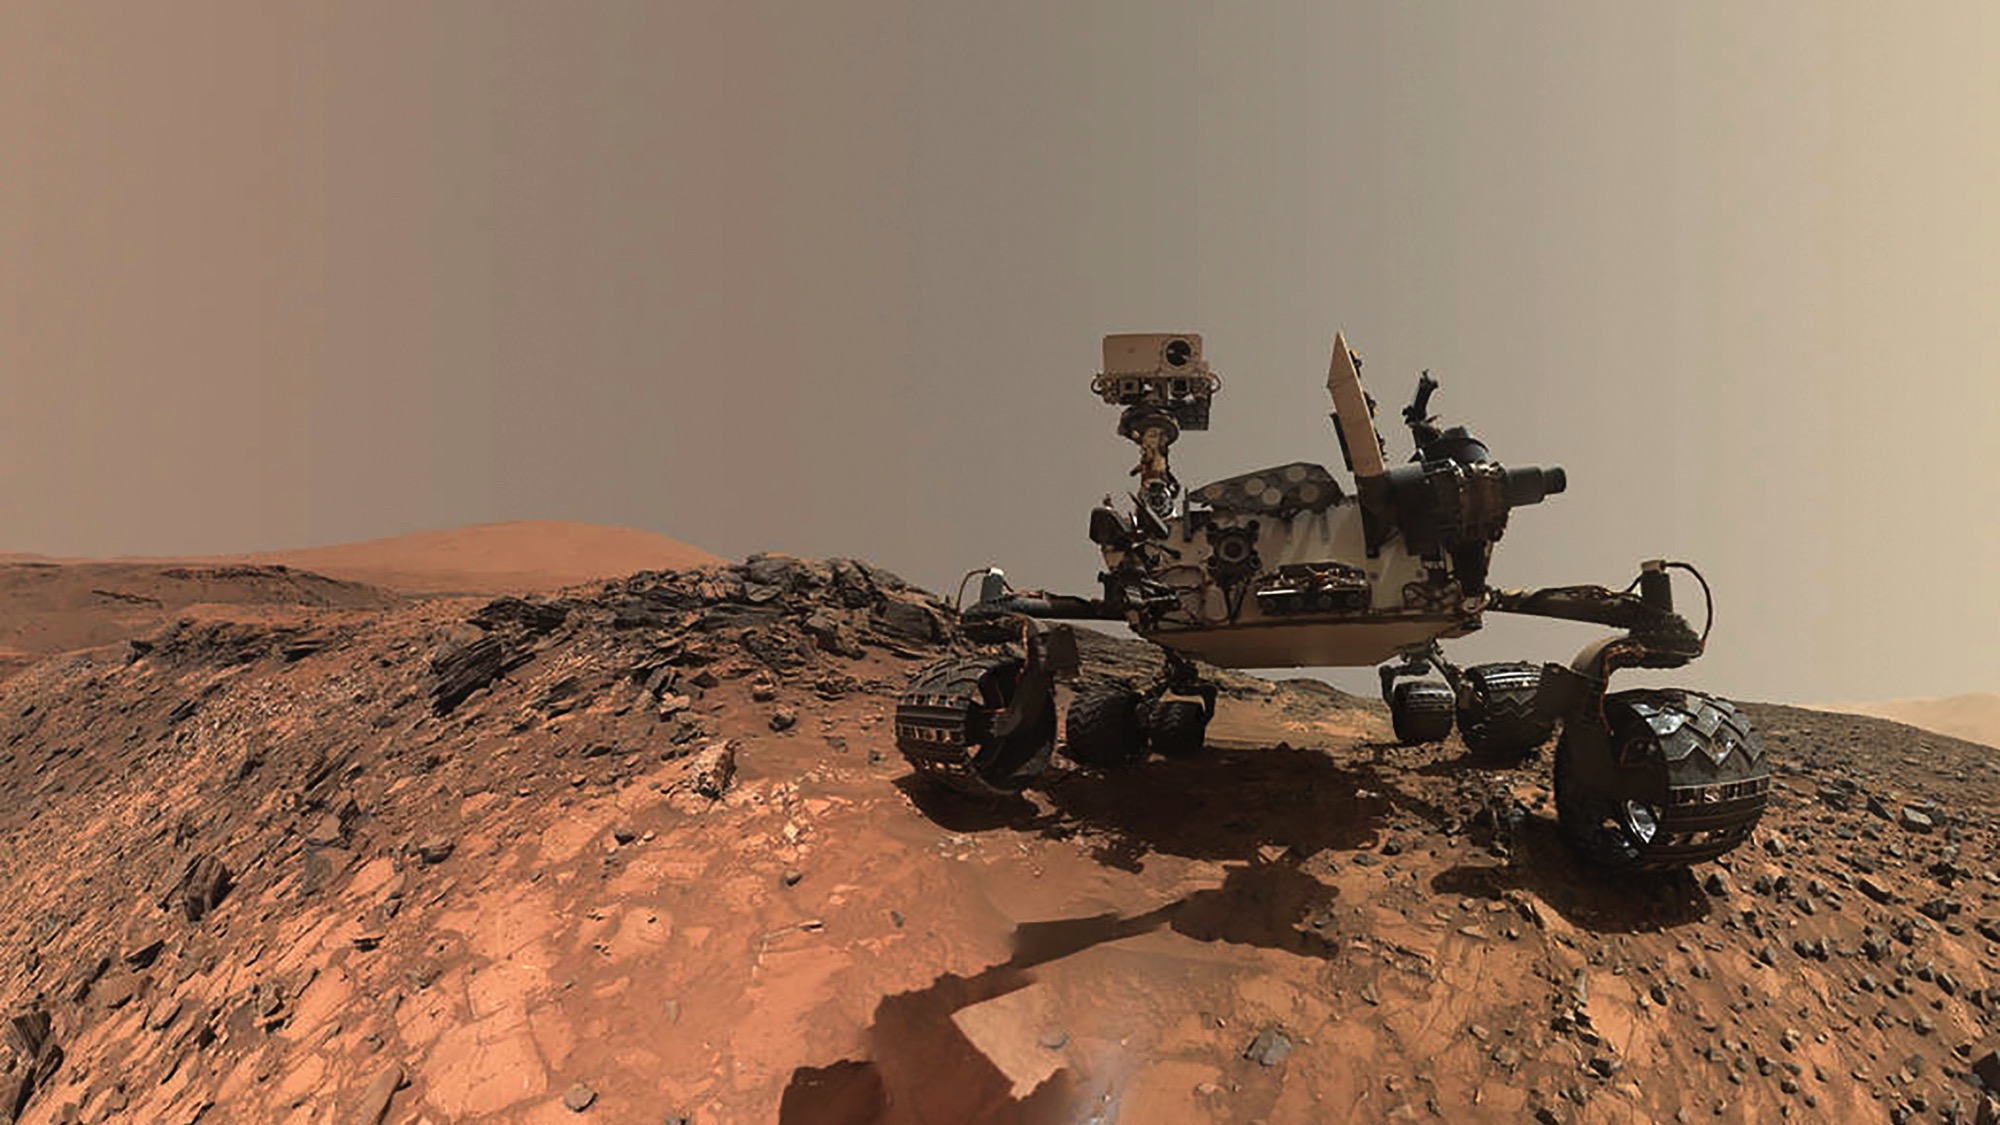 NASA's Curiosity Mars rover is seen at the site from which it reached down to drill into a rock target called 'Buckskin' on lower Mount Sharp in this low-angle self-portrait taken August 5, 2015 and released August 19, 2015. The selfie combines several component images taken by Curiosity's Mars Hand Lens Imager (MAHLI) during the 1,065th Martian day, or sol, of the rover's work on Mars, according to a NASA news release.  REUTERS/NASA/JPL-Caltech/MSSS/Handout  THIS IMAGE HAS BEEN SUPPLIED BY A THIRD PARTY. IT IS DISTRIBUTED, EXACTLY AS RECEIVED BY REUTERS, AS A SERVICE TO CLIENTS. FOR EDITORIAL USE ONLY. NOT FOR SALE FOR MARKETING OR ADVERTISING CAMPAIGNS - RTX1OUG3